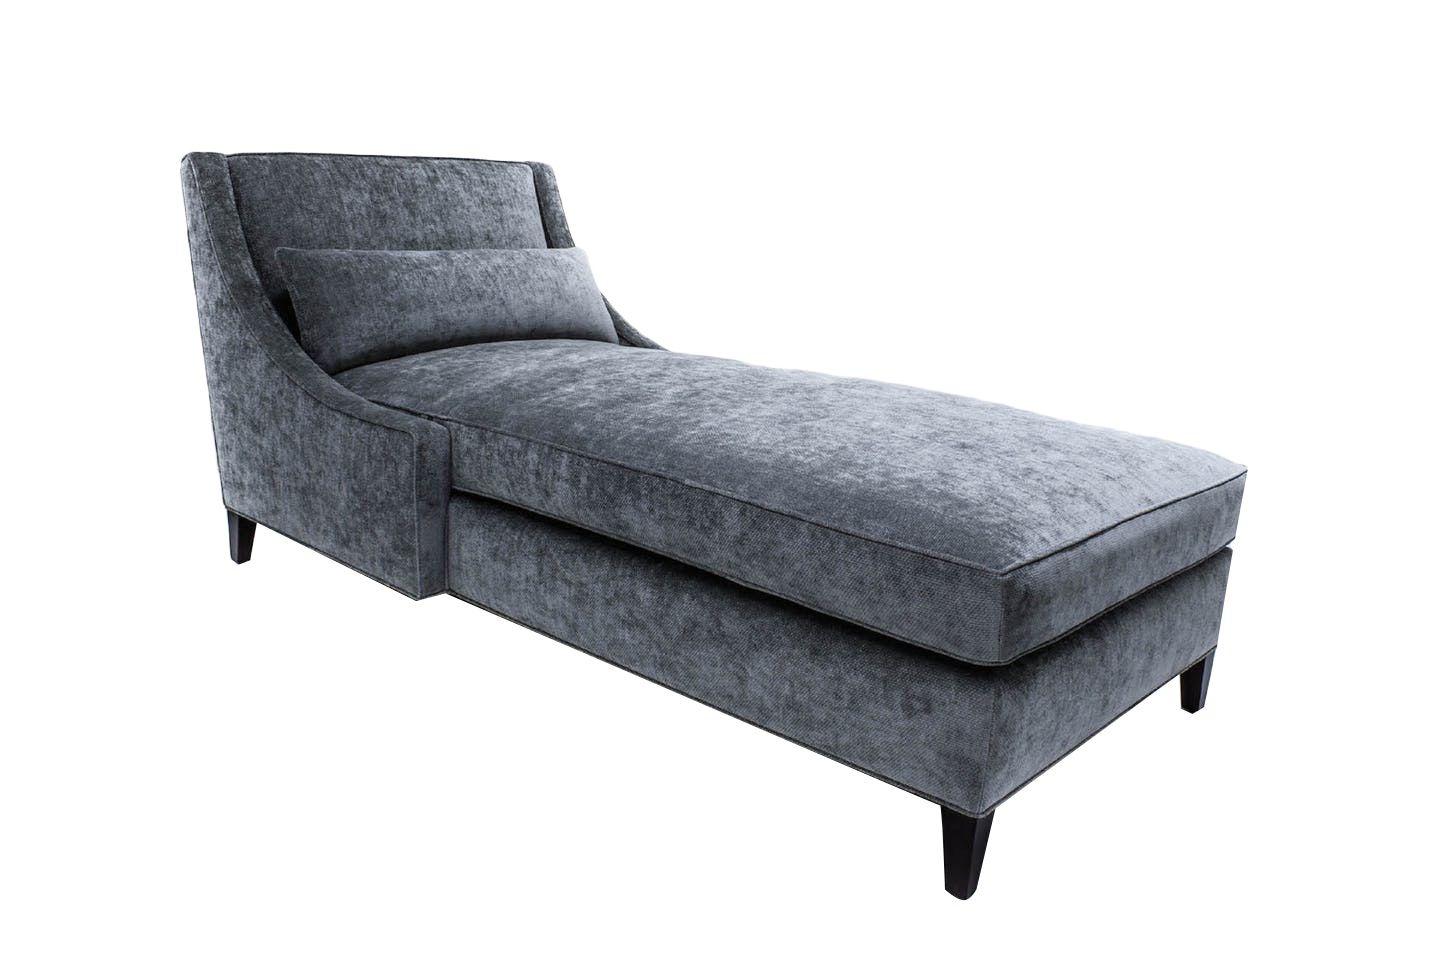 Buy Vintage Chaise By Room Designer Furniture From Dering Hall S Collection Of Transitional Mid Century Modern Traditional Ch Vintage Sofa Chaise Furniture